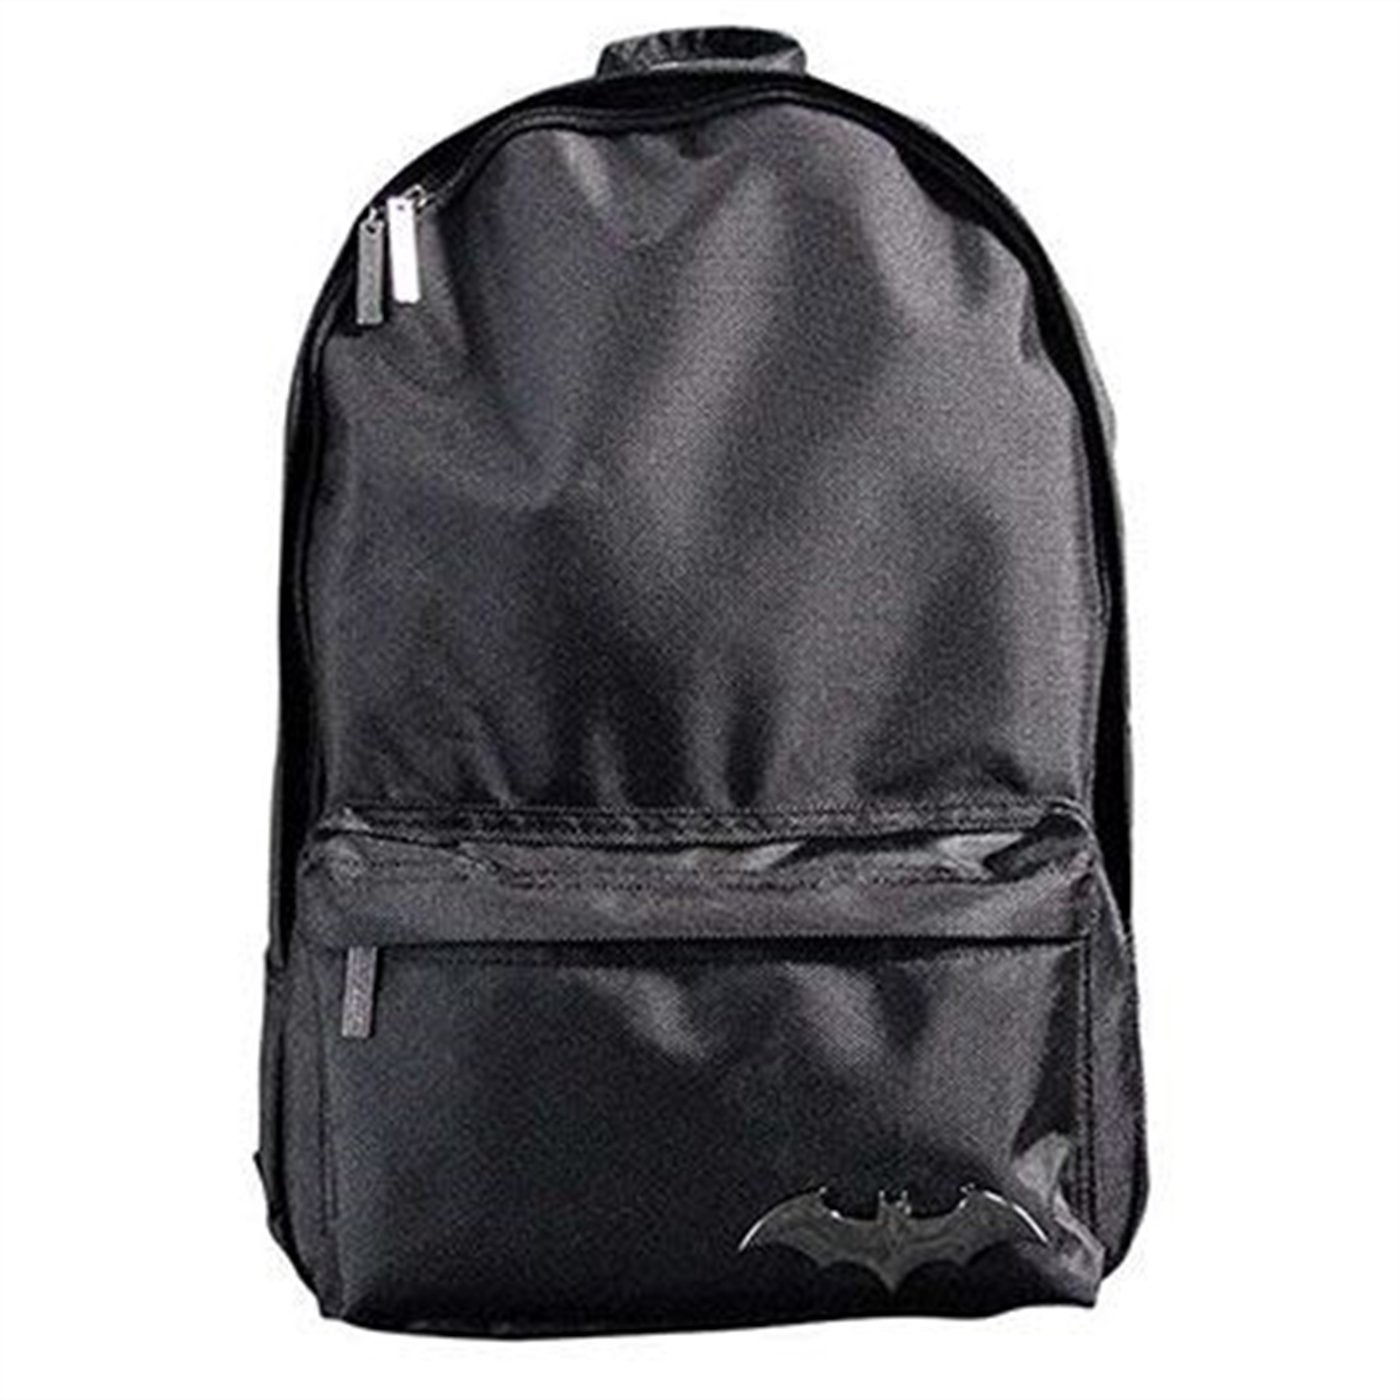 Black Batman Badge Backpack